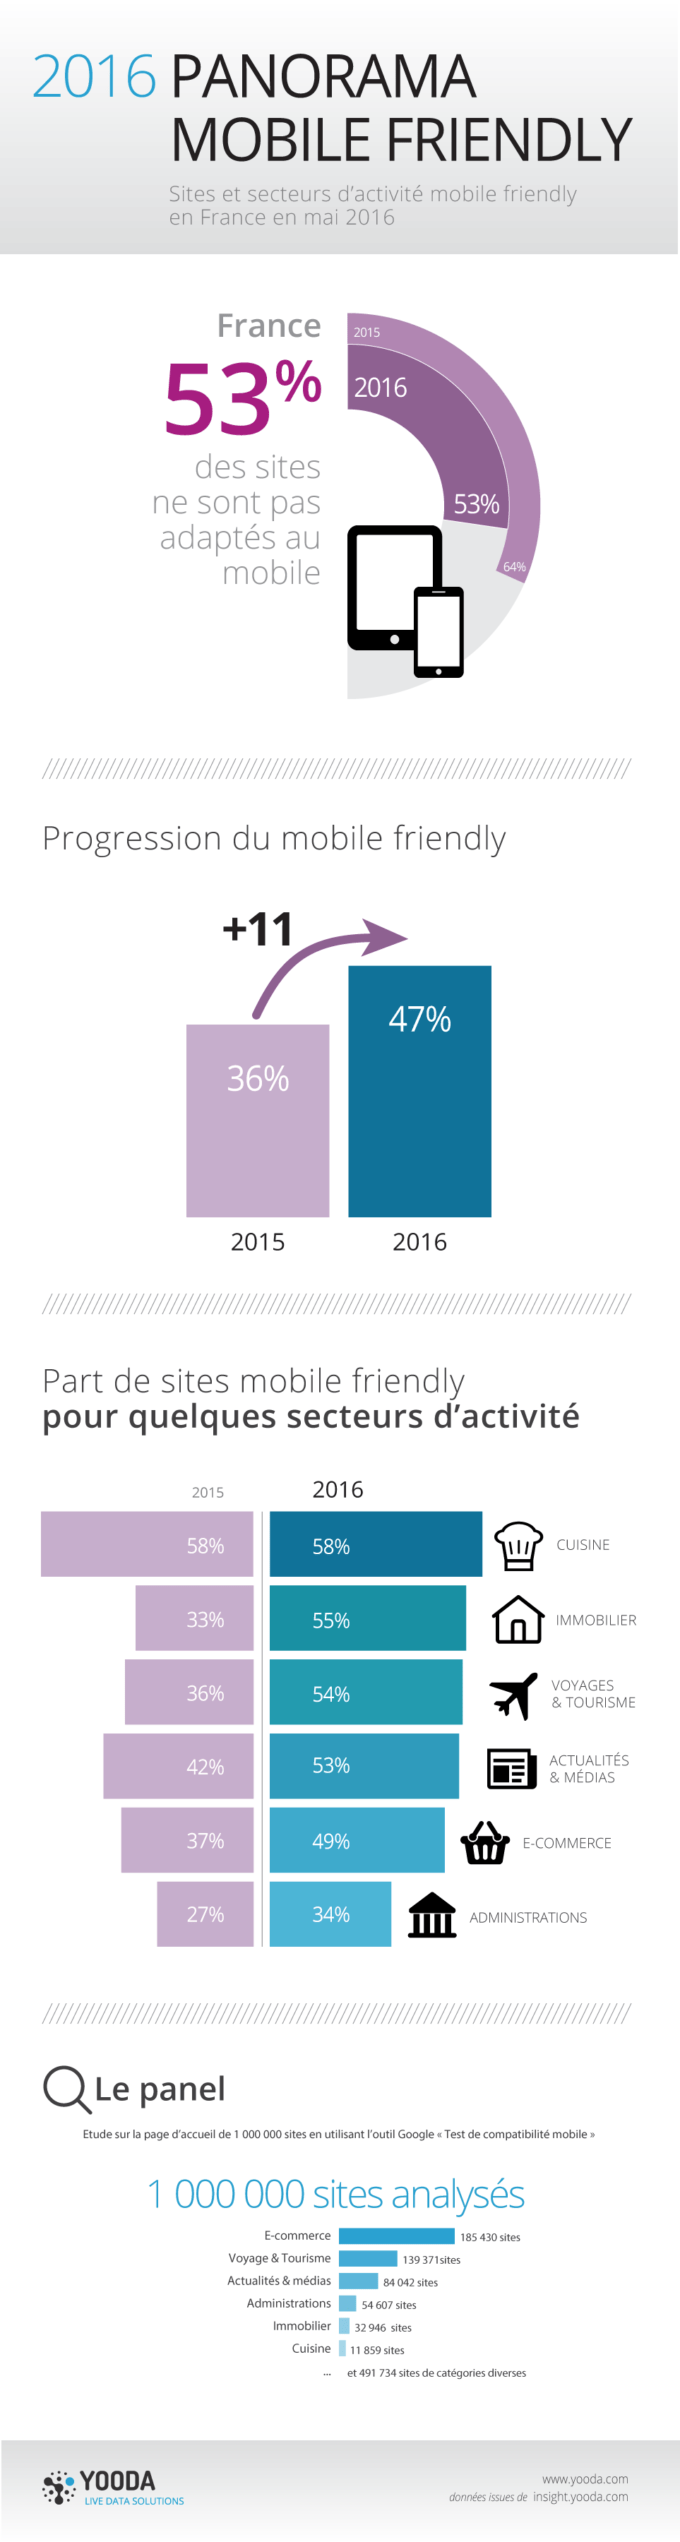 "étude ""Mobile friendly"" 2016"